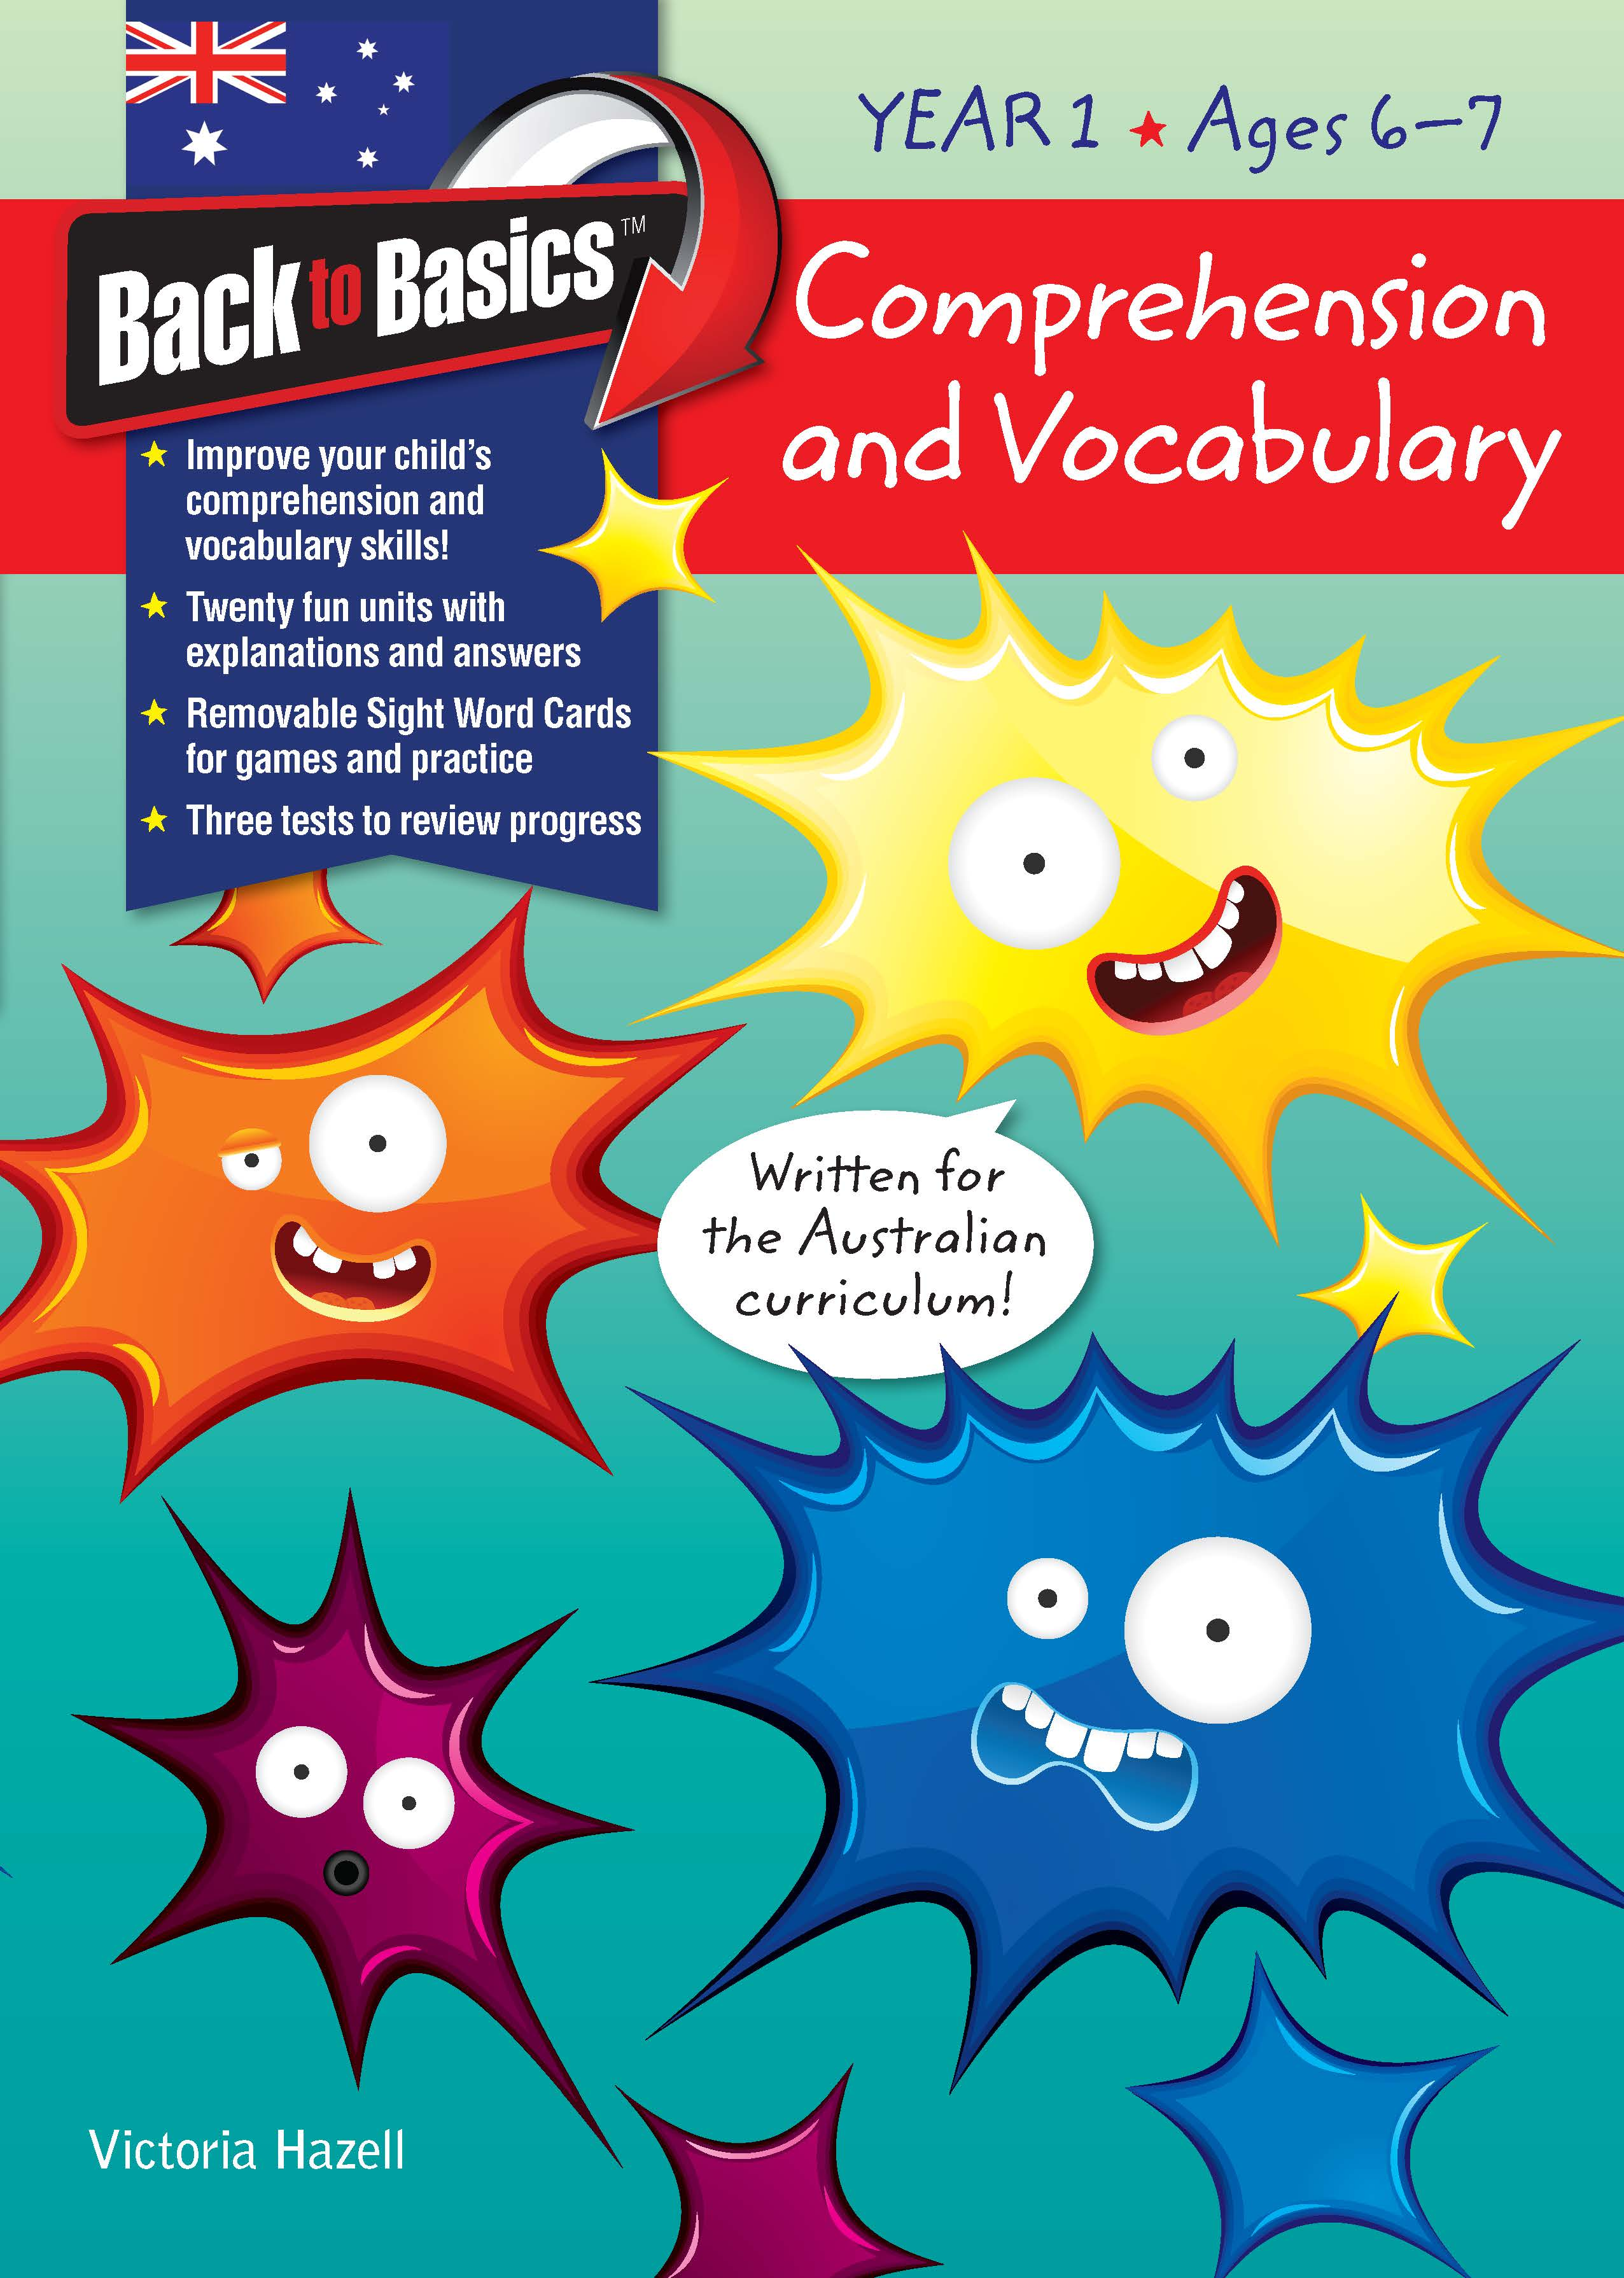 Back to Basics - Comprehension & Vocabulary Year 1